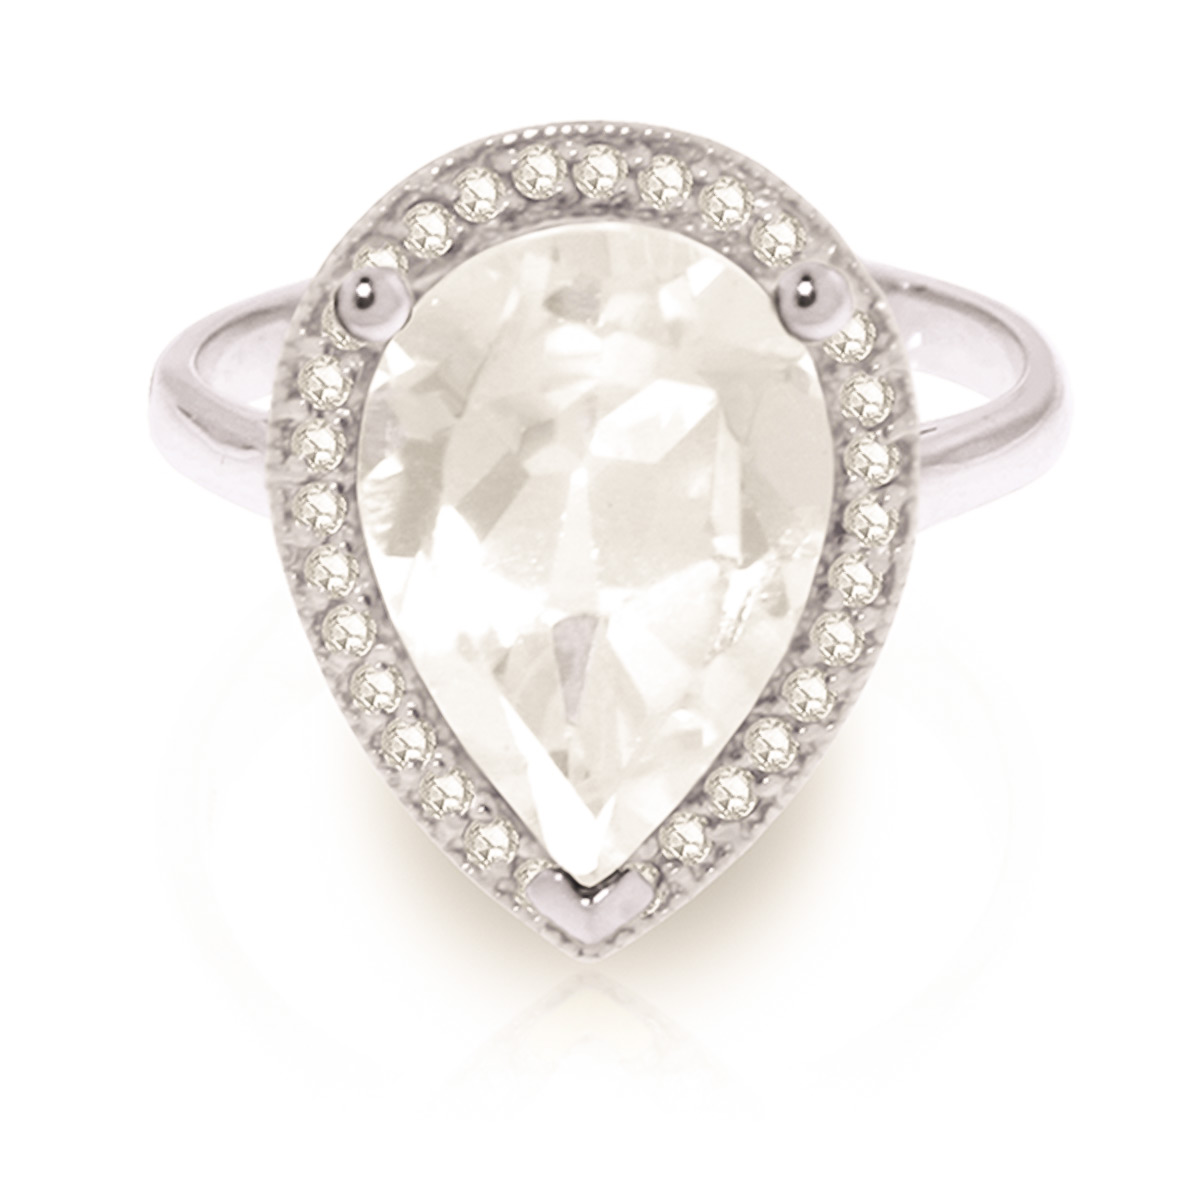 White Topaz Halo Ring 5.61 ctw in 9ct White Gold